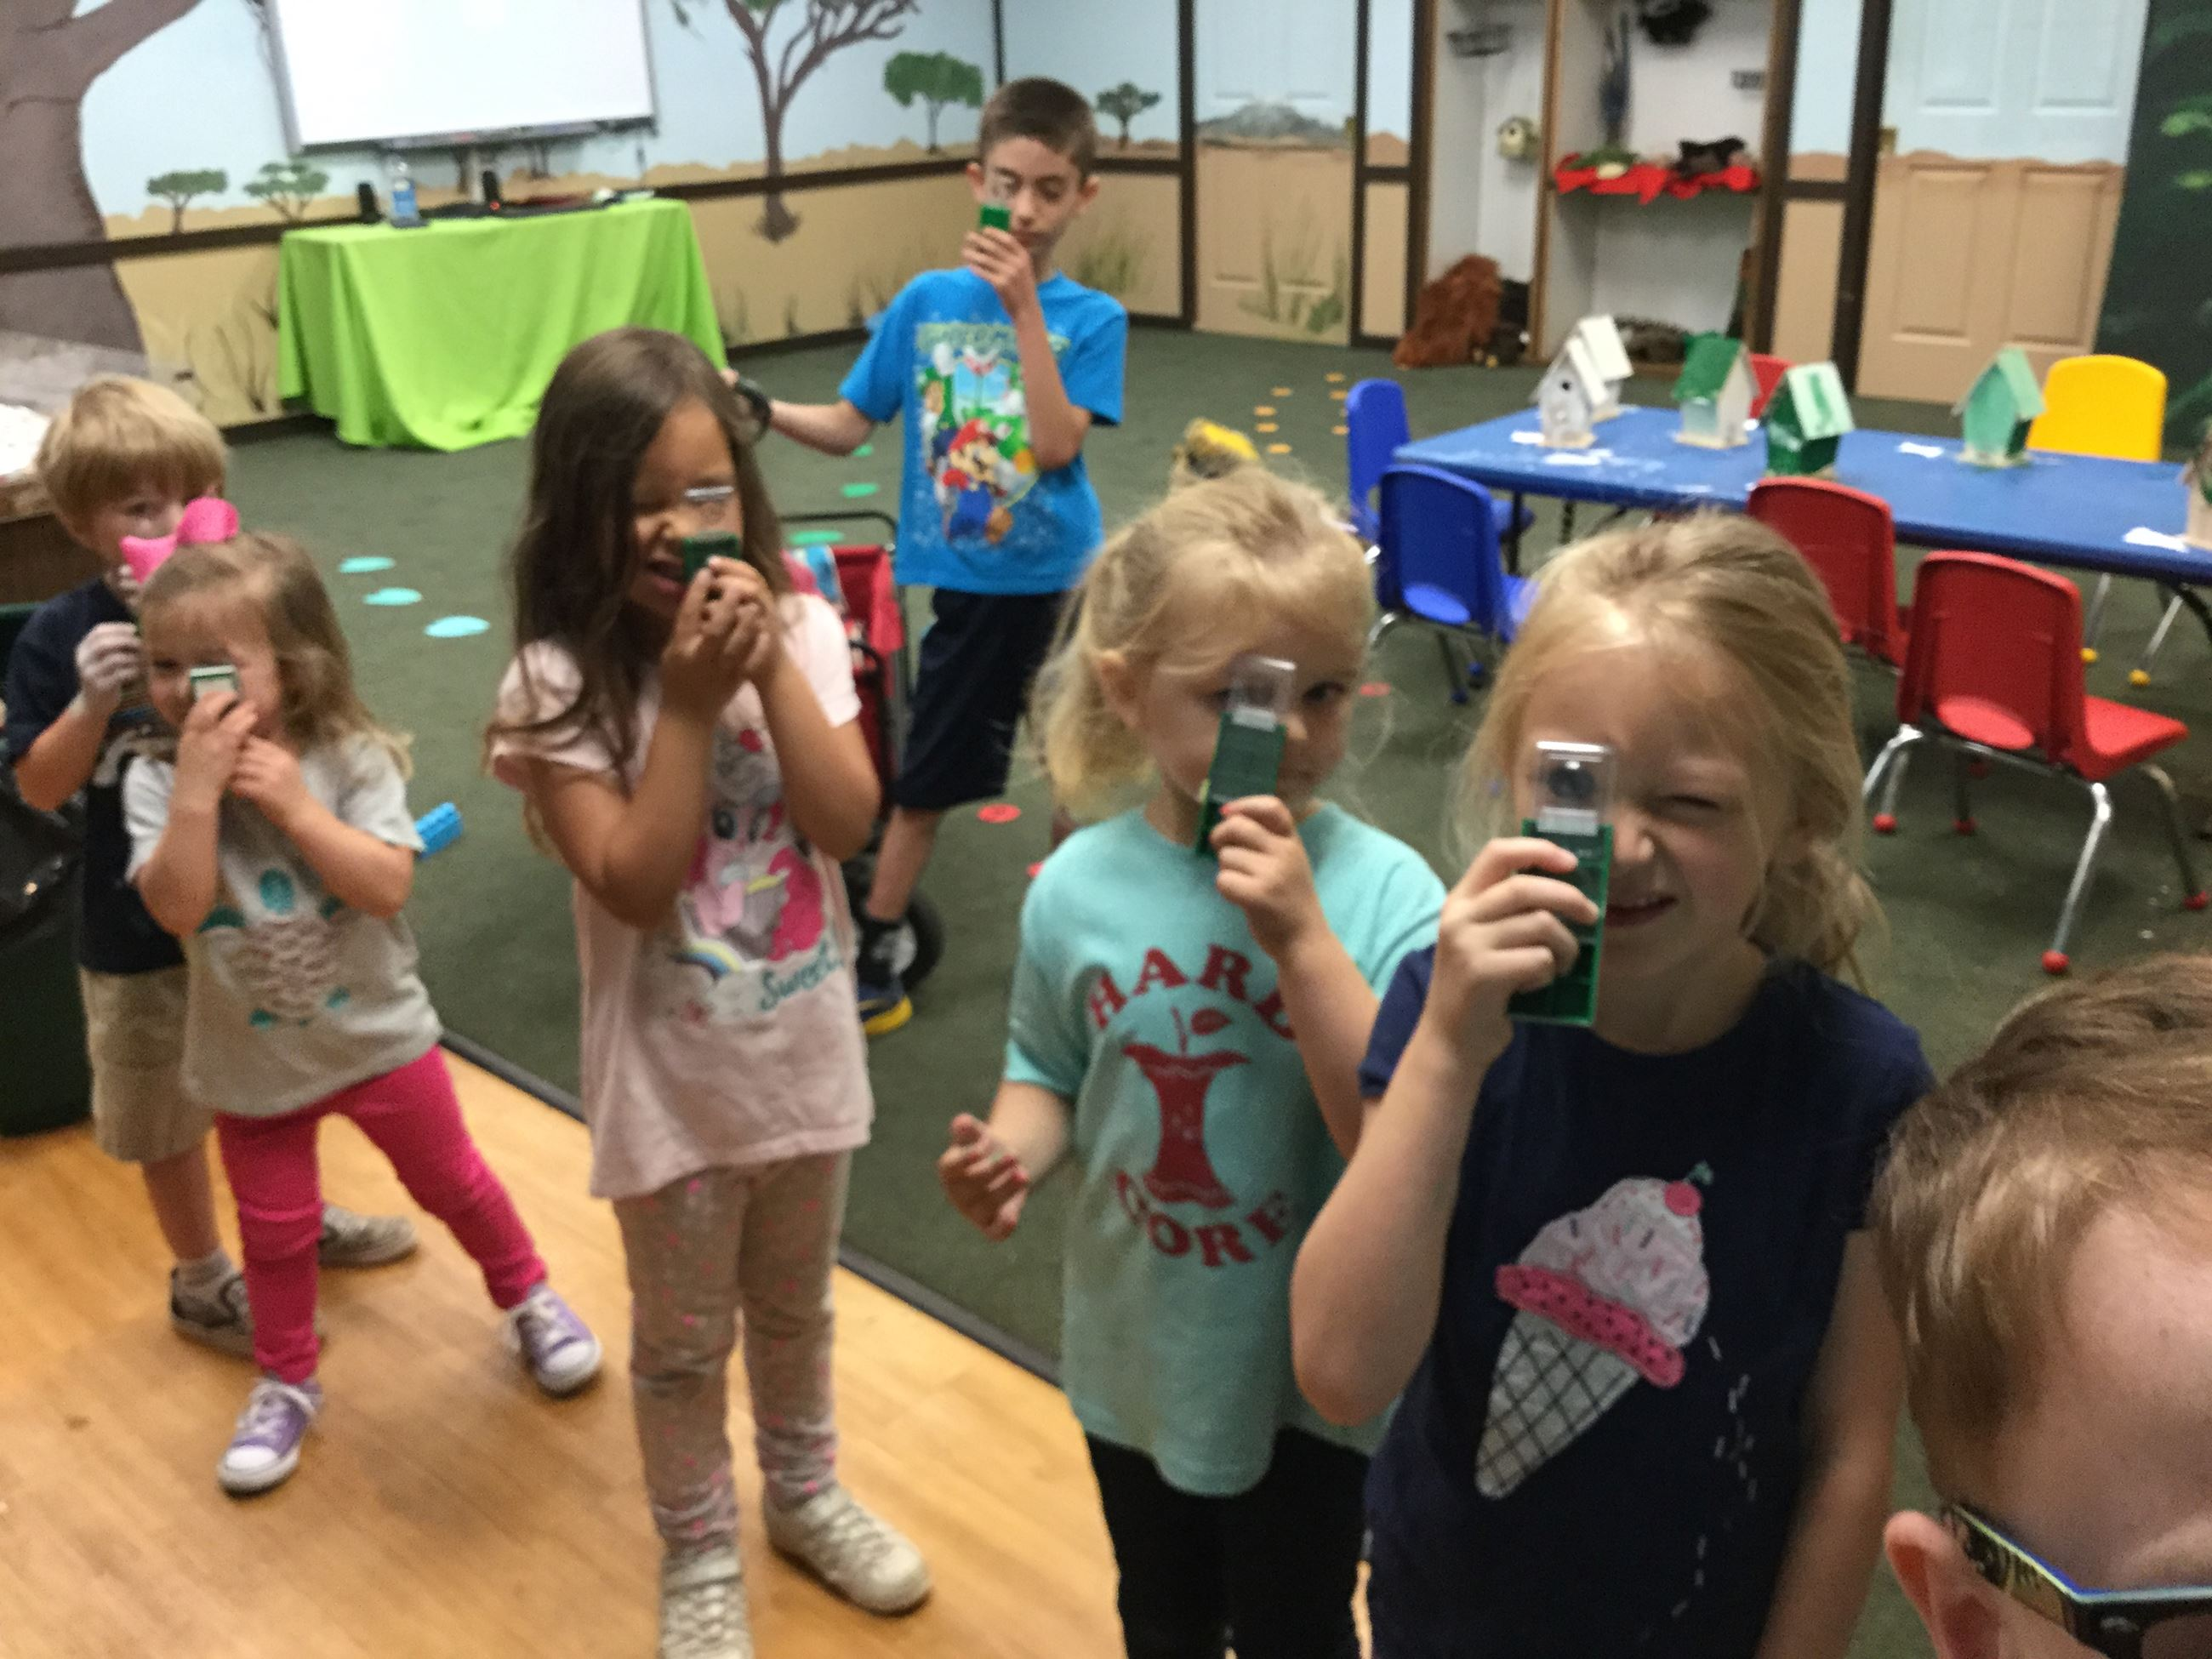 Young Children in a Classroom Playing with Magnifying Glasses